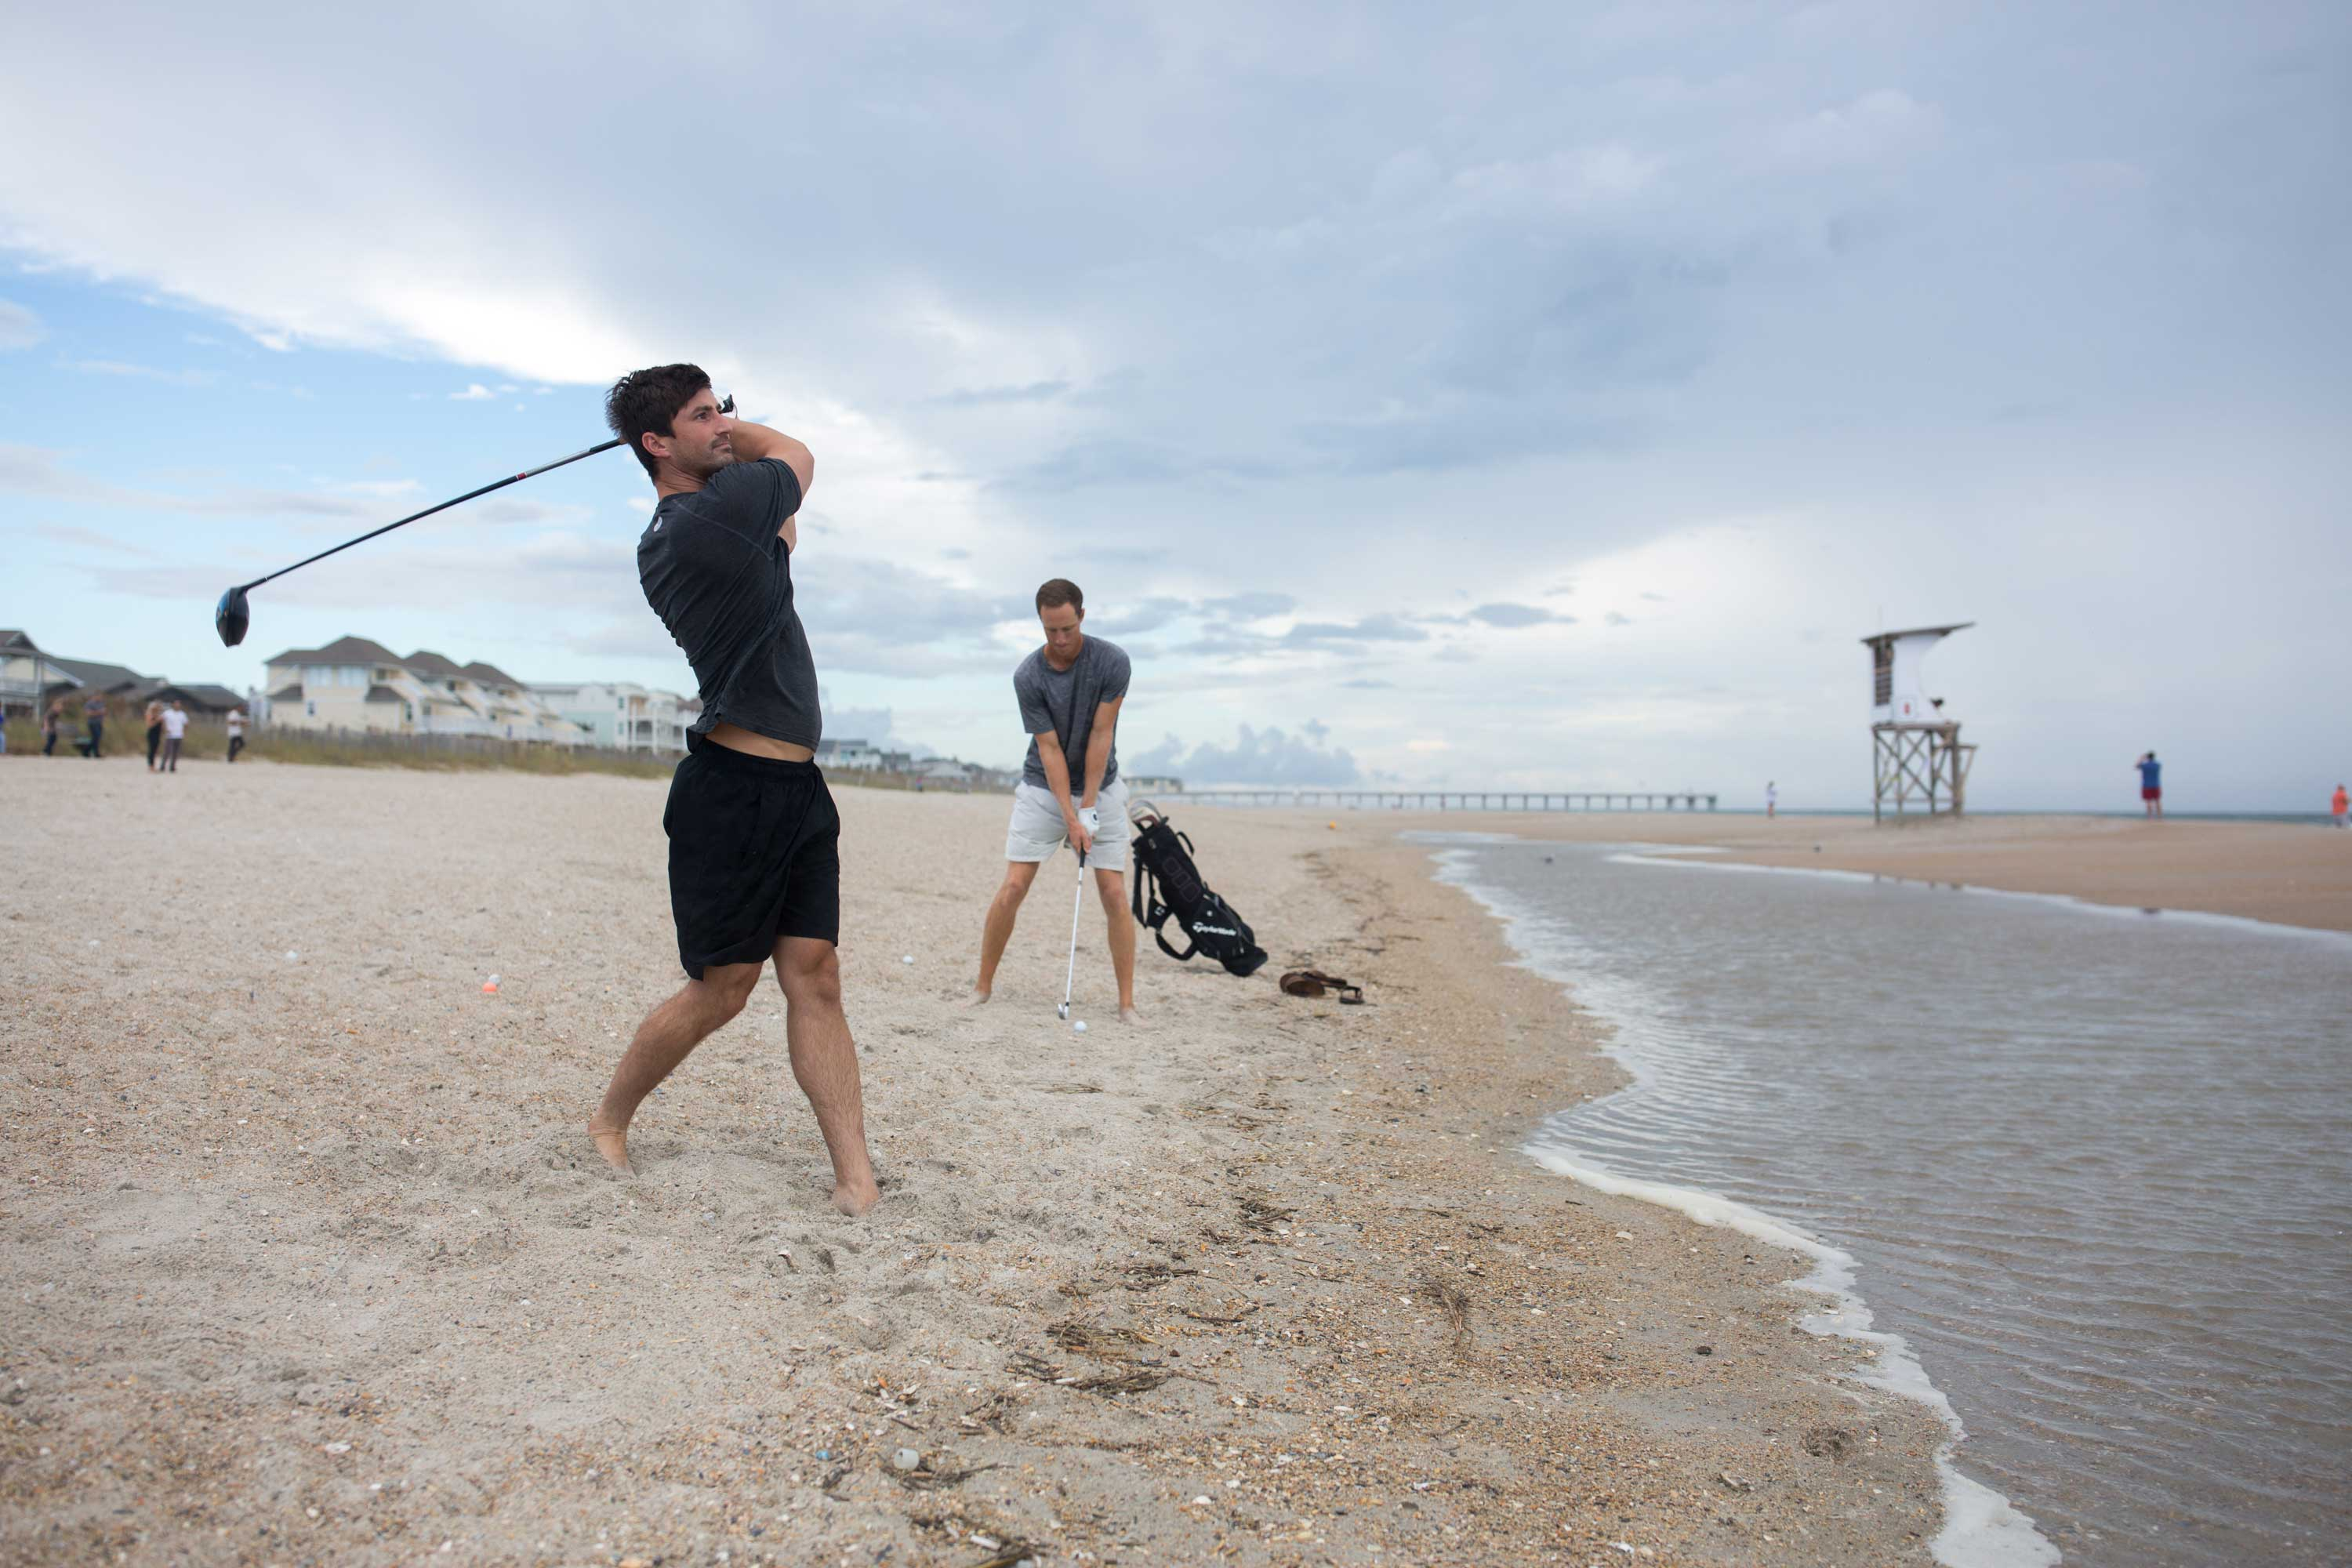 <div class='meta'><div class='origin-logo' data-origin='none'></div><span class='caption-text' data-credit='LOGAN CYRUS/AFP/Getty Images'>Matt Jones tees off while his friend Jacob Whitehead looks on at Wrightsville Beach, N.C. on September 11, 2018, as they plan to ride out Hurricane Florence.</span></div>